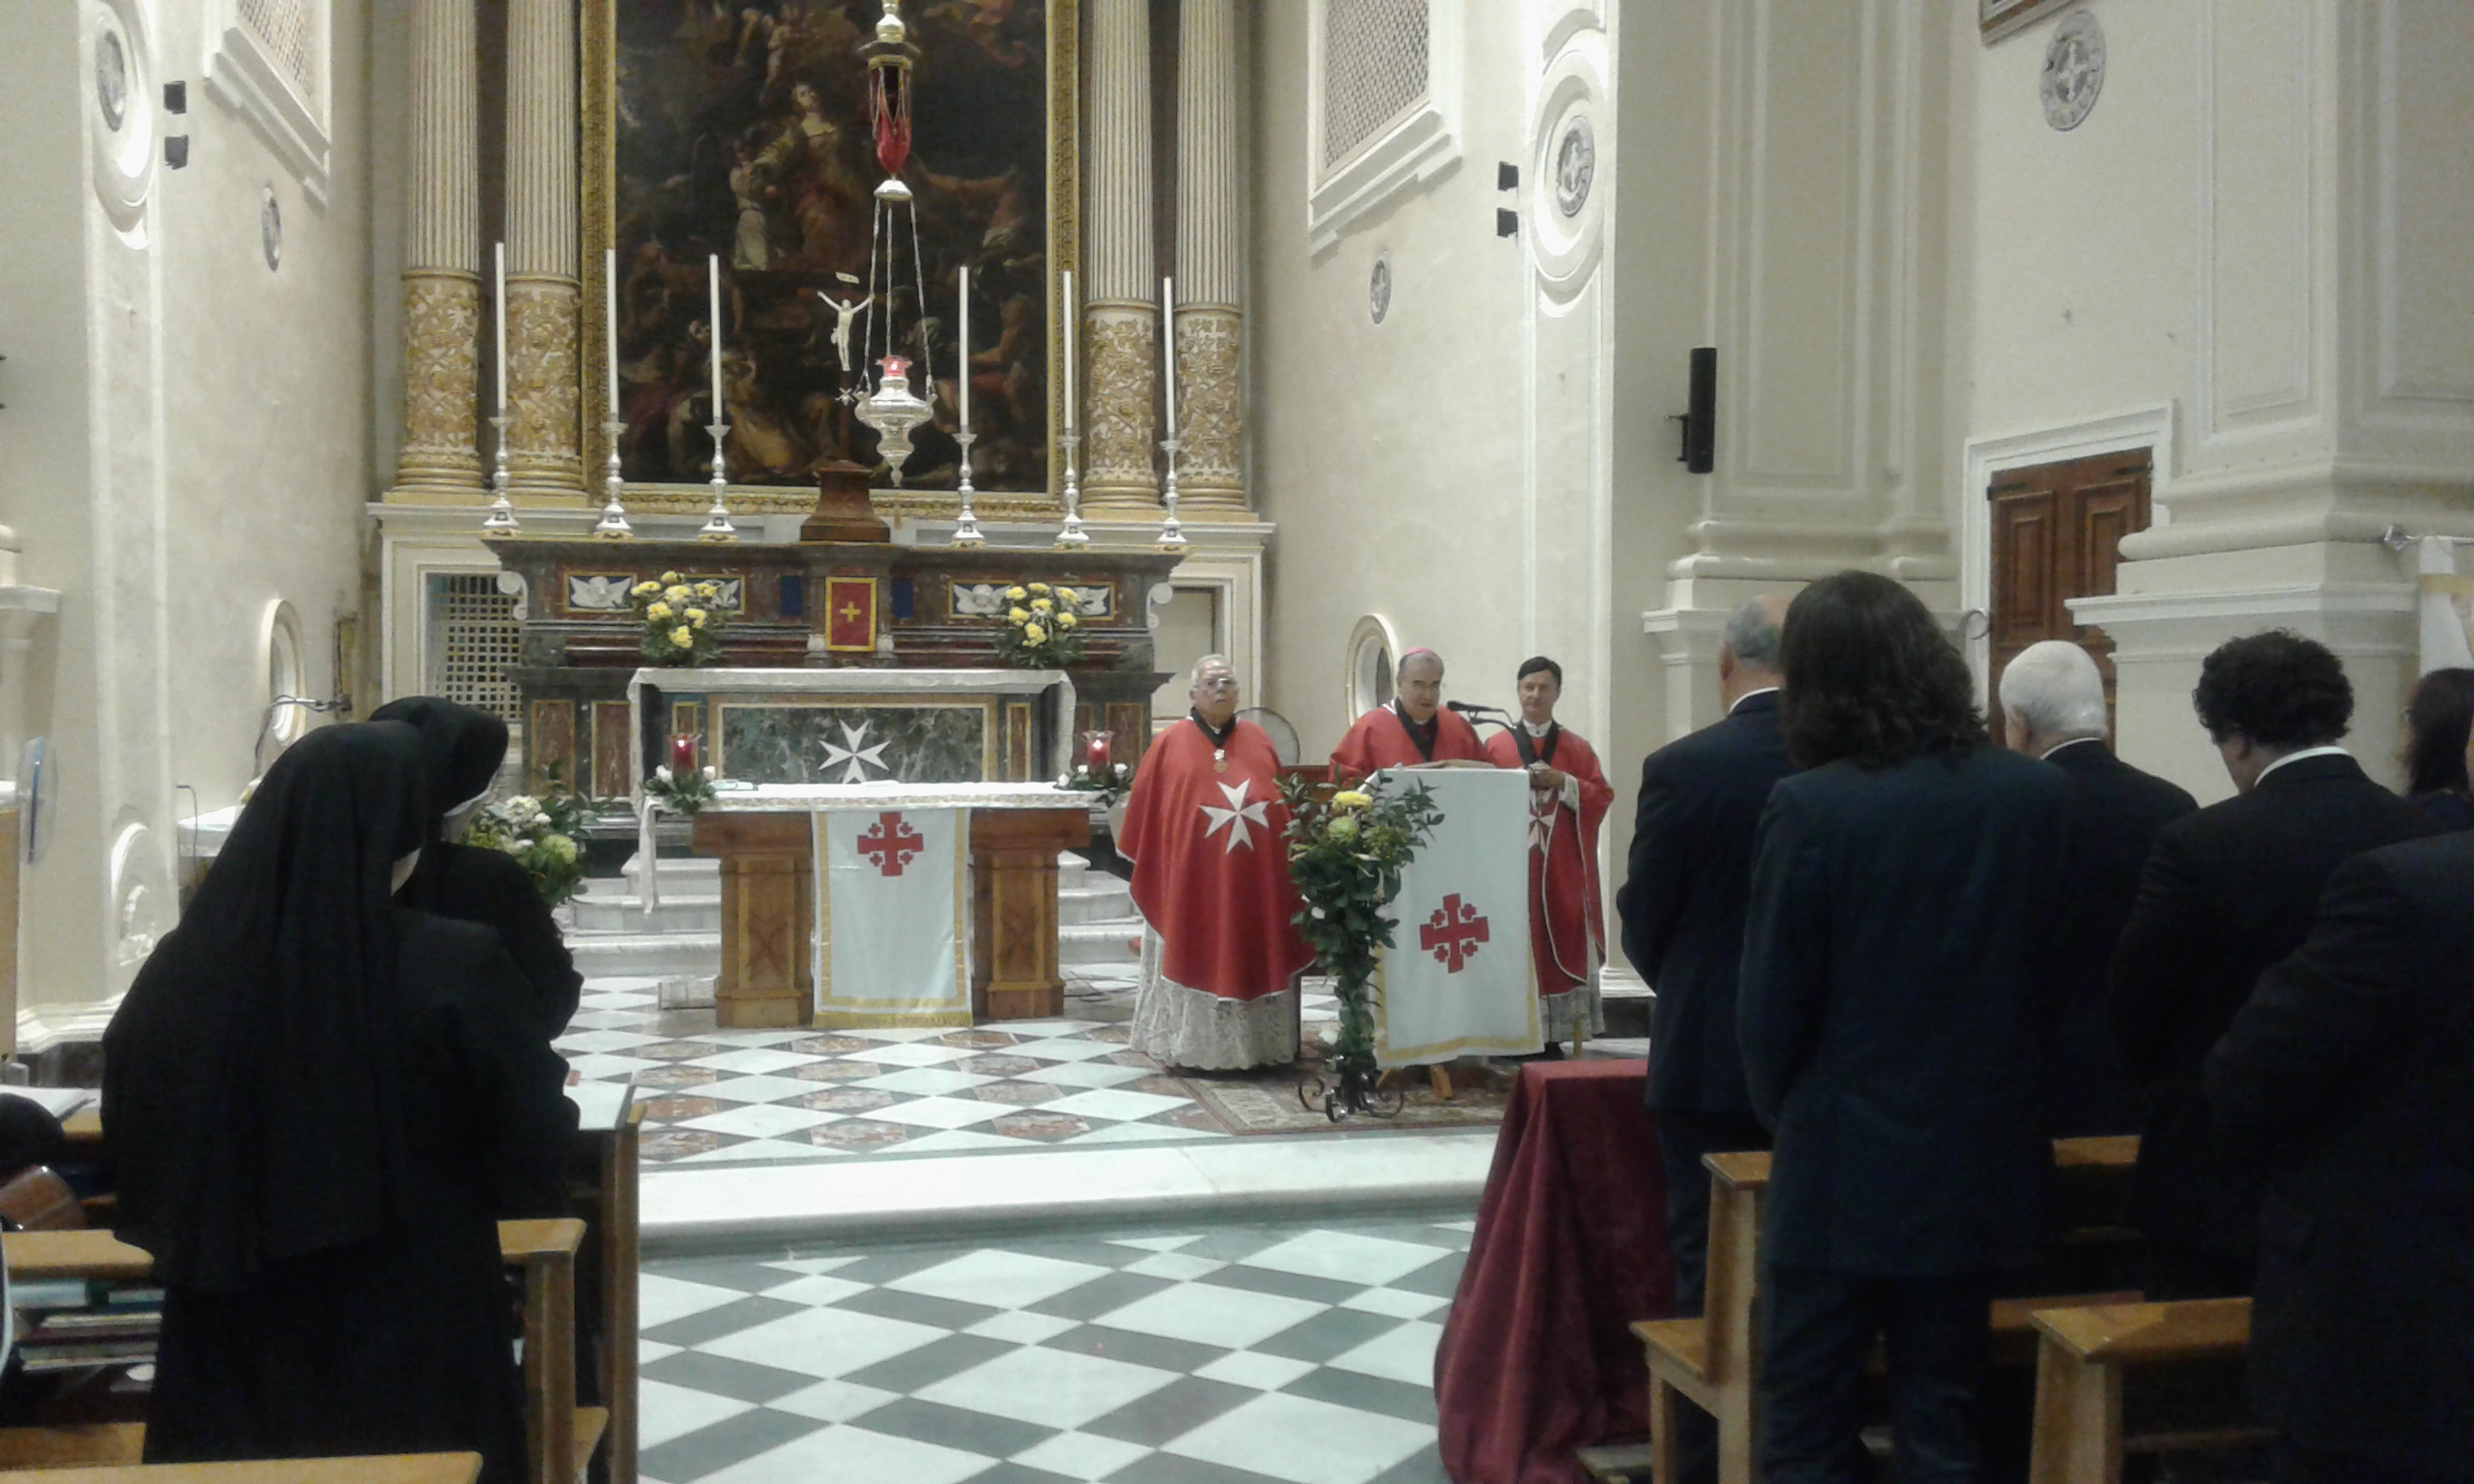 His Grace, Archbishop Emeritus of Malta, Mgr. Paul Cremona O.P celebrating the anniversary mass